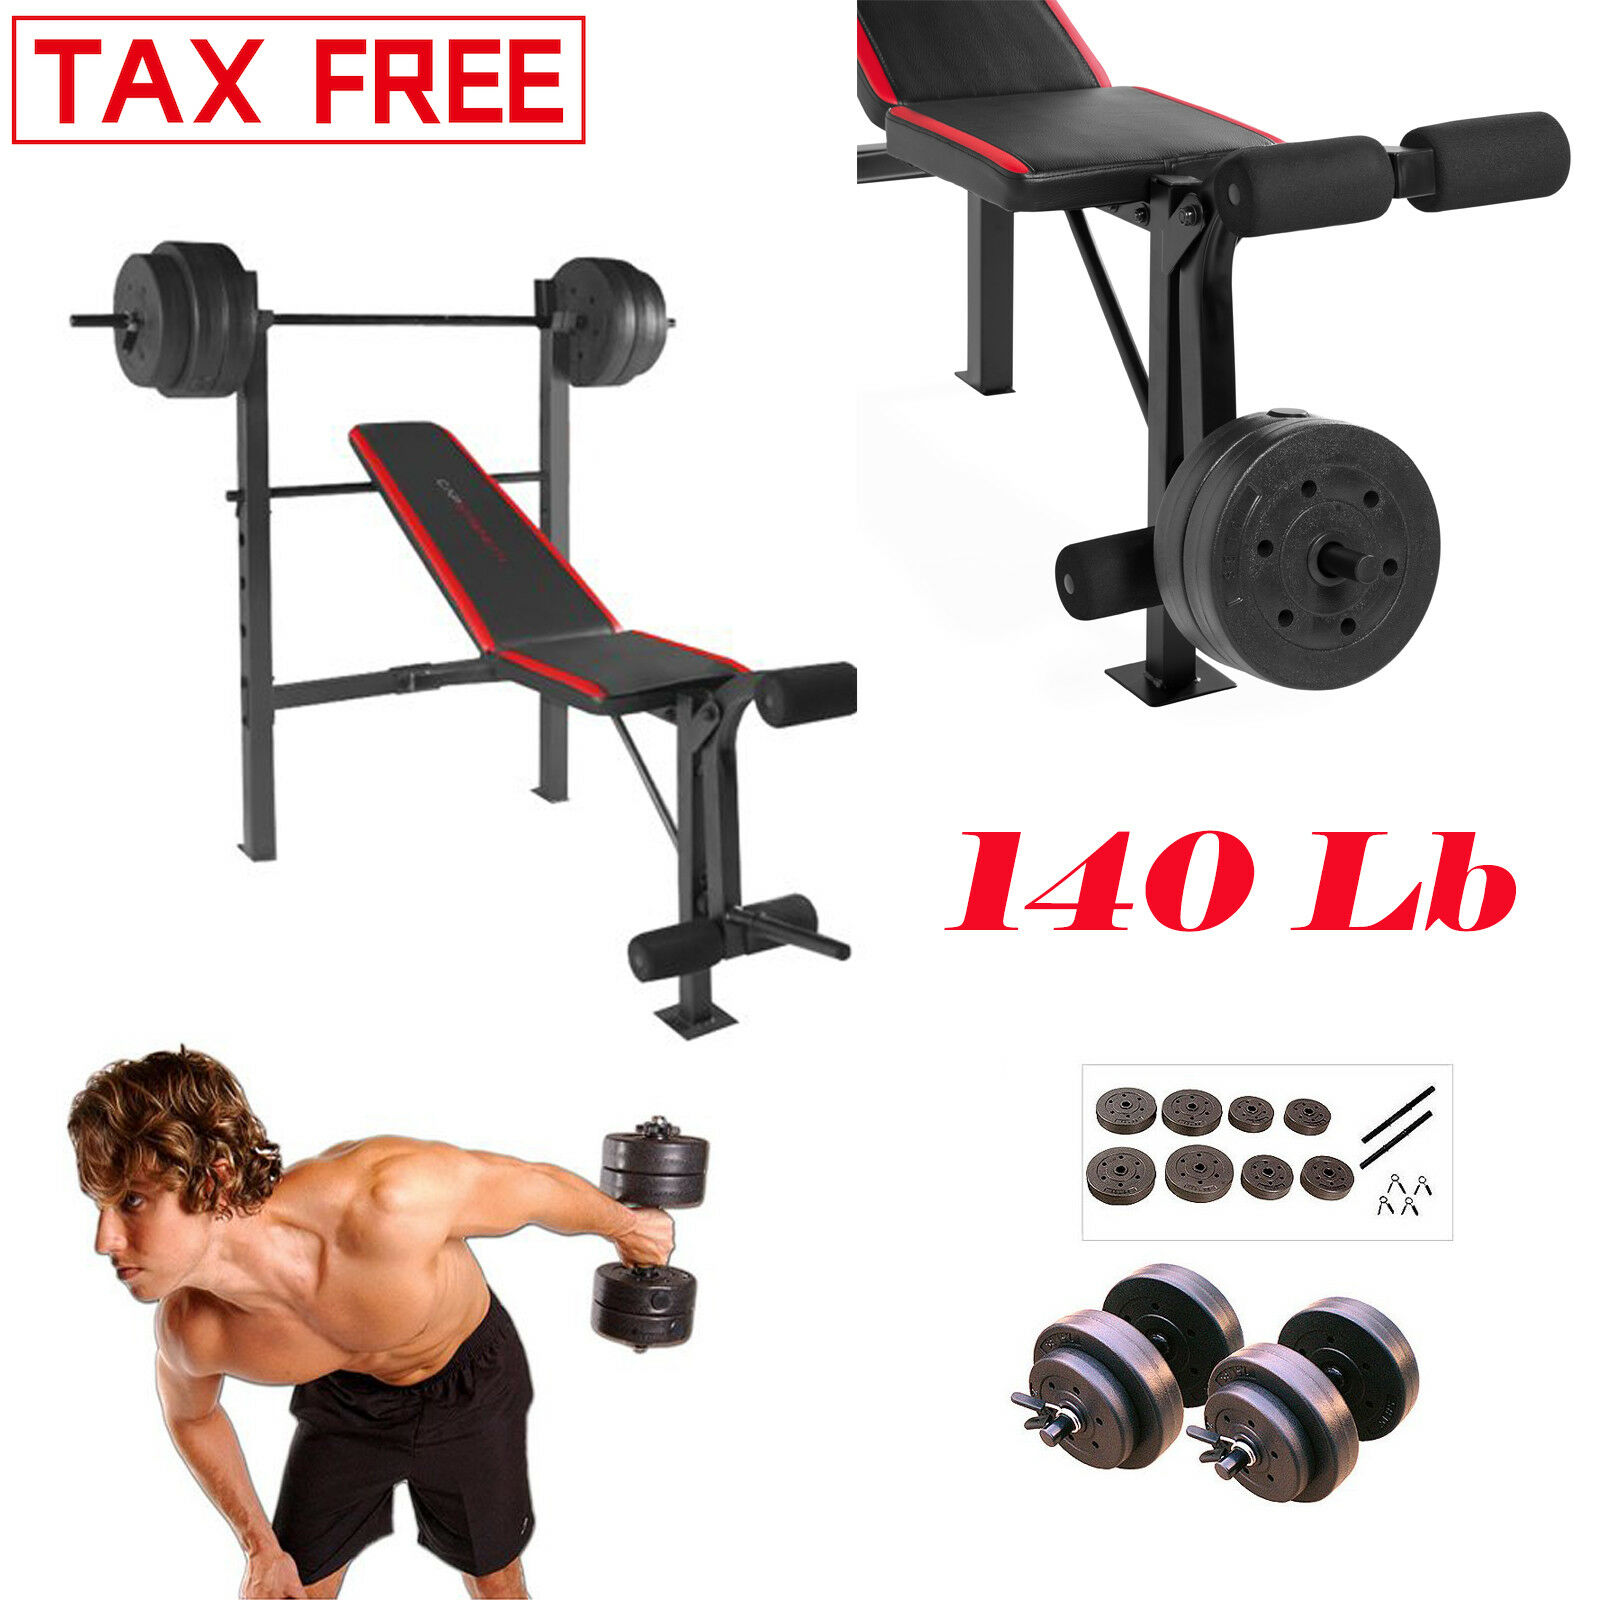 WEIGHT BENCH WITH WEIGHTS SET Dumbbells Standard Vinyl Workout Home Gym 140 Lb